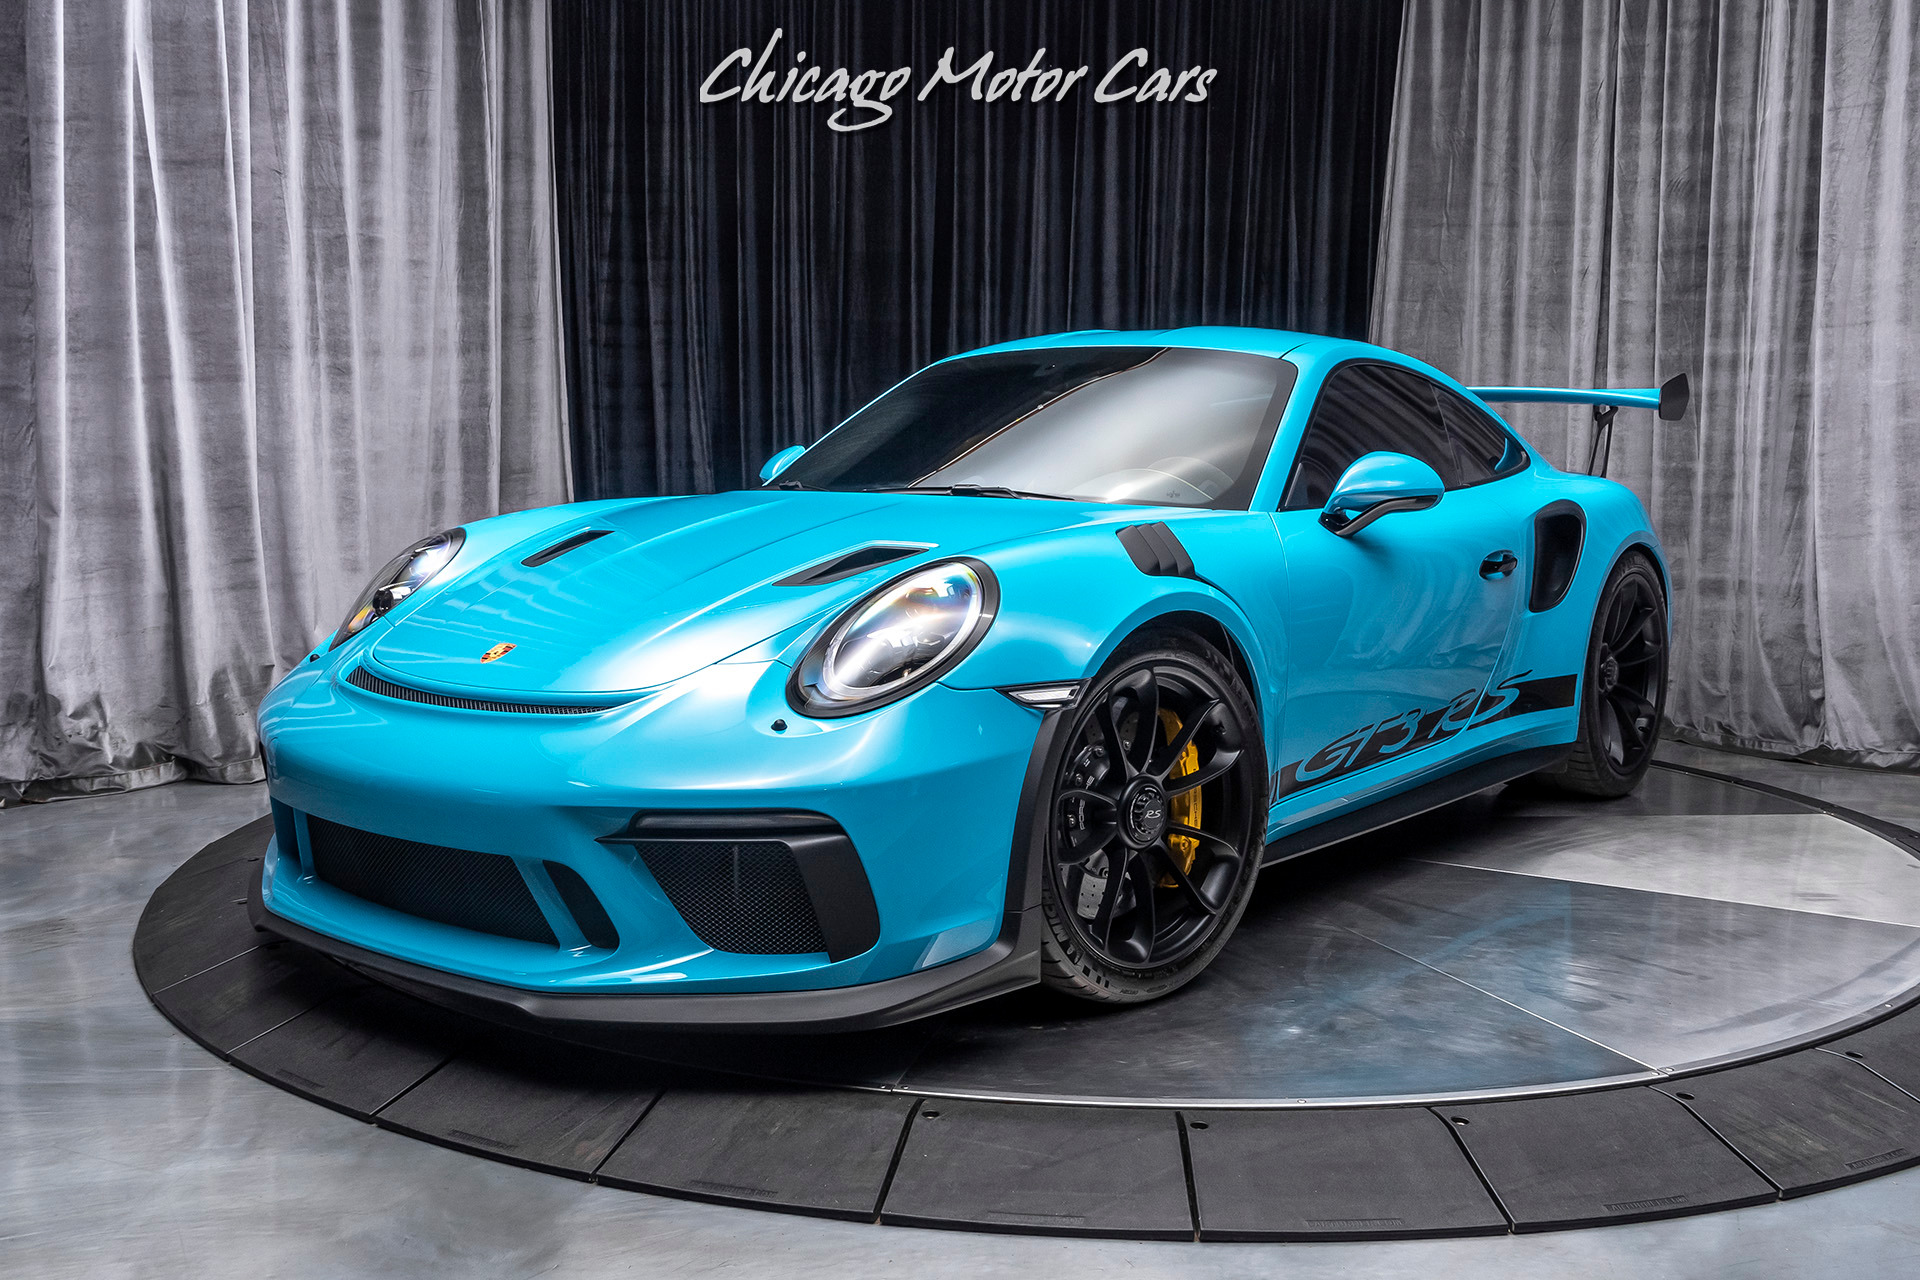 Used 2019 Porsche 911 Gt3 Rs Coupe Miami Blue Only 2800 Miles Loaded For Sale Special Pricing Chicago Motor Cars Stock 17400